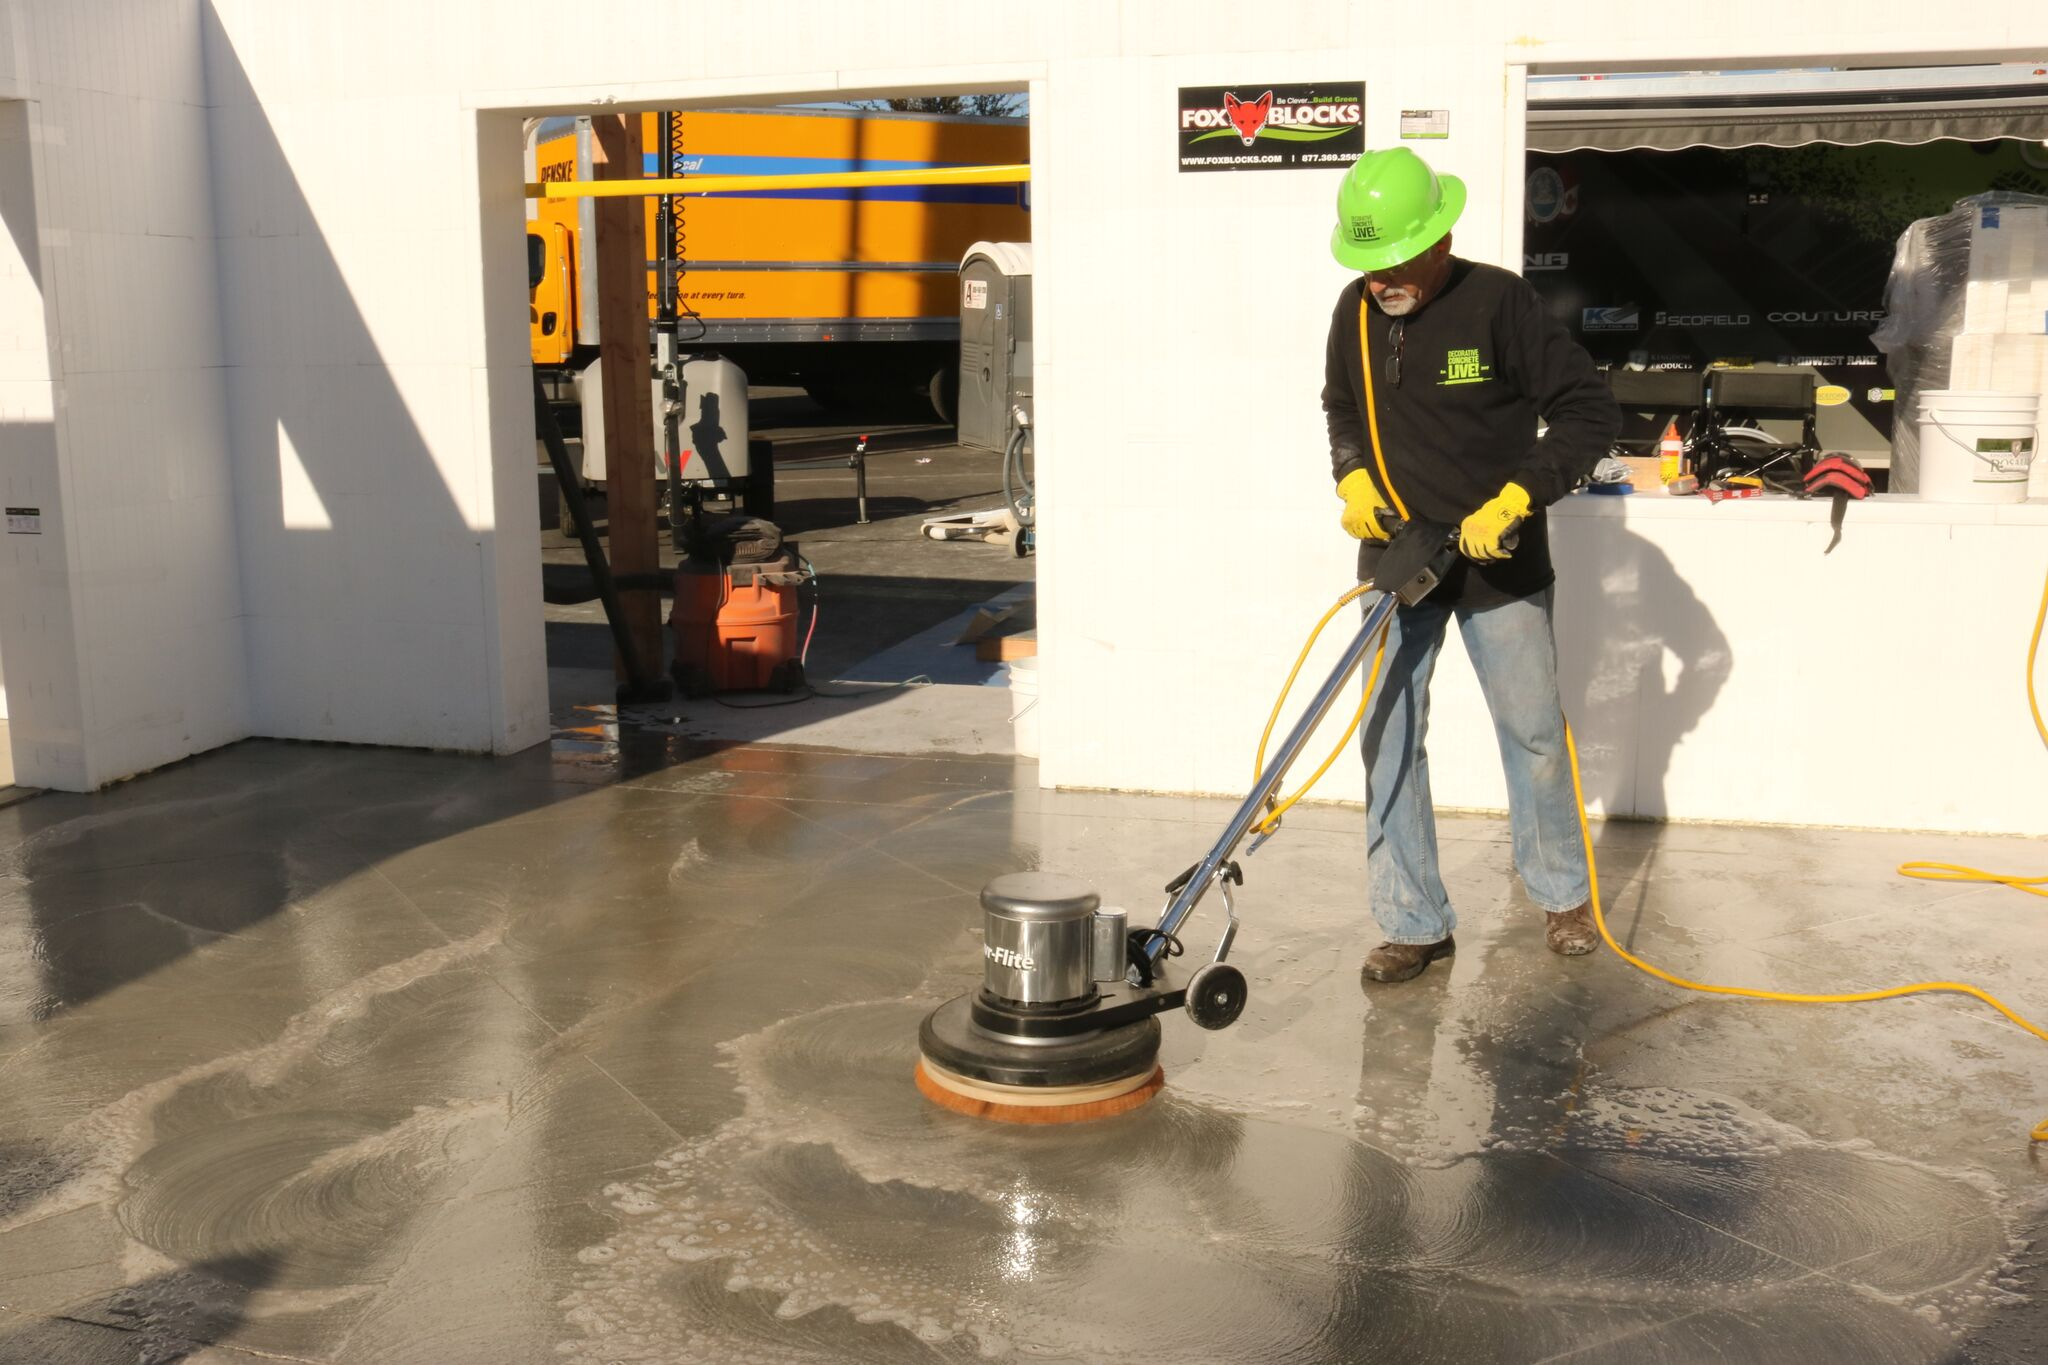 Julio Hallack polishing floor